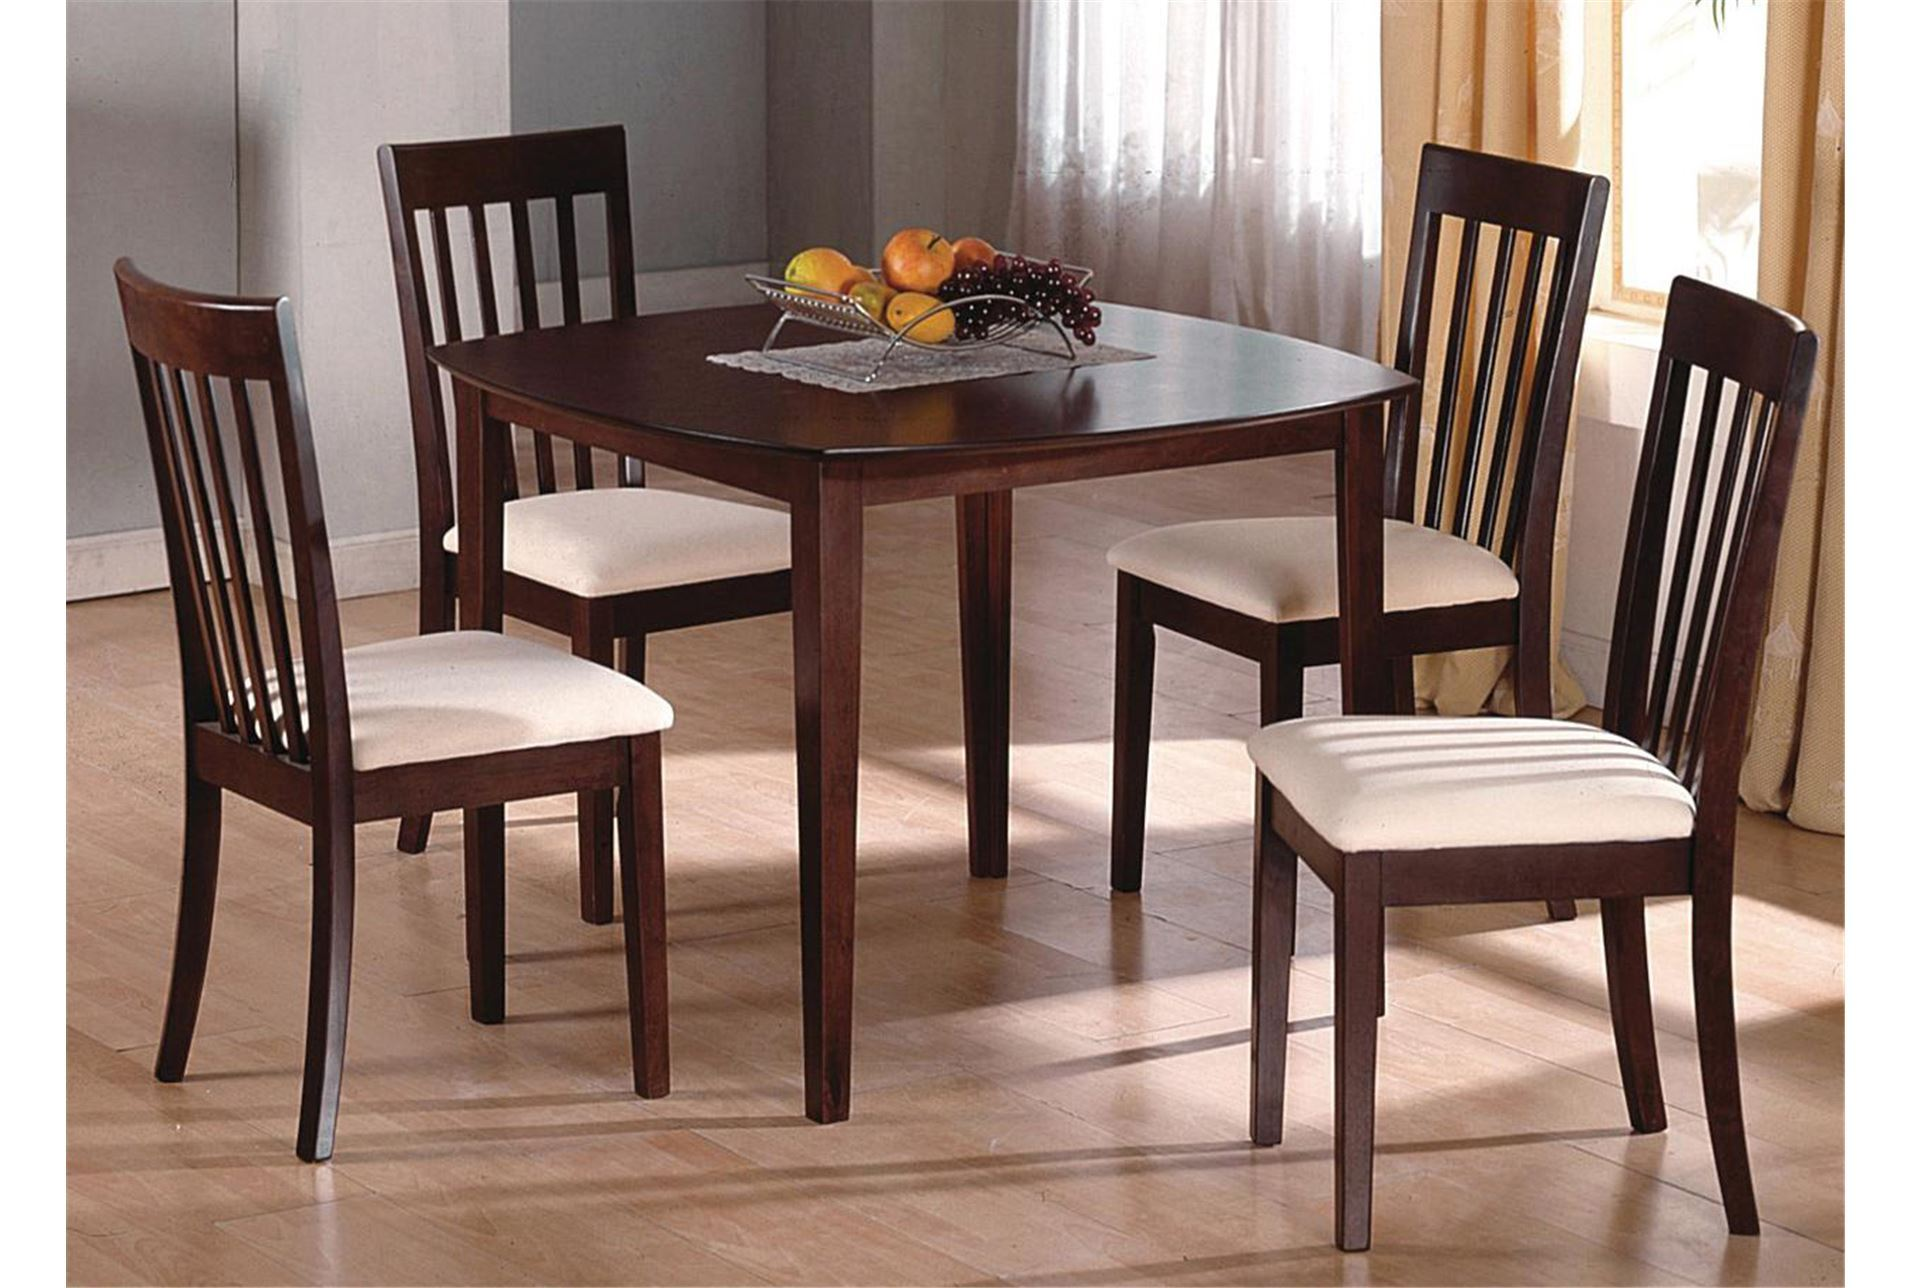 Superb img of Ross 5 Piece Dining Set Living Spaces with #9B6430 color and 1911x1288 pixels